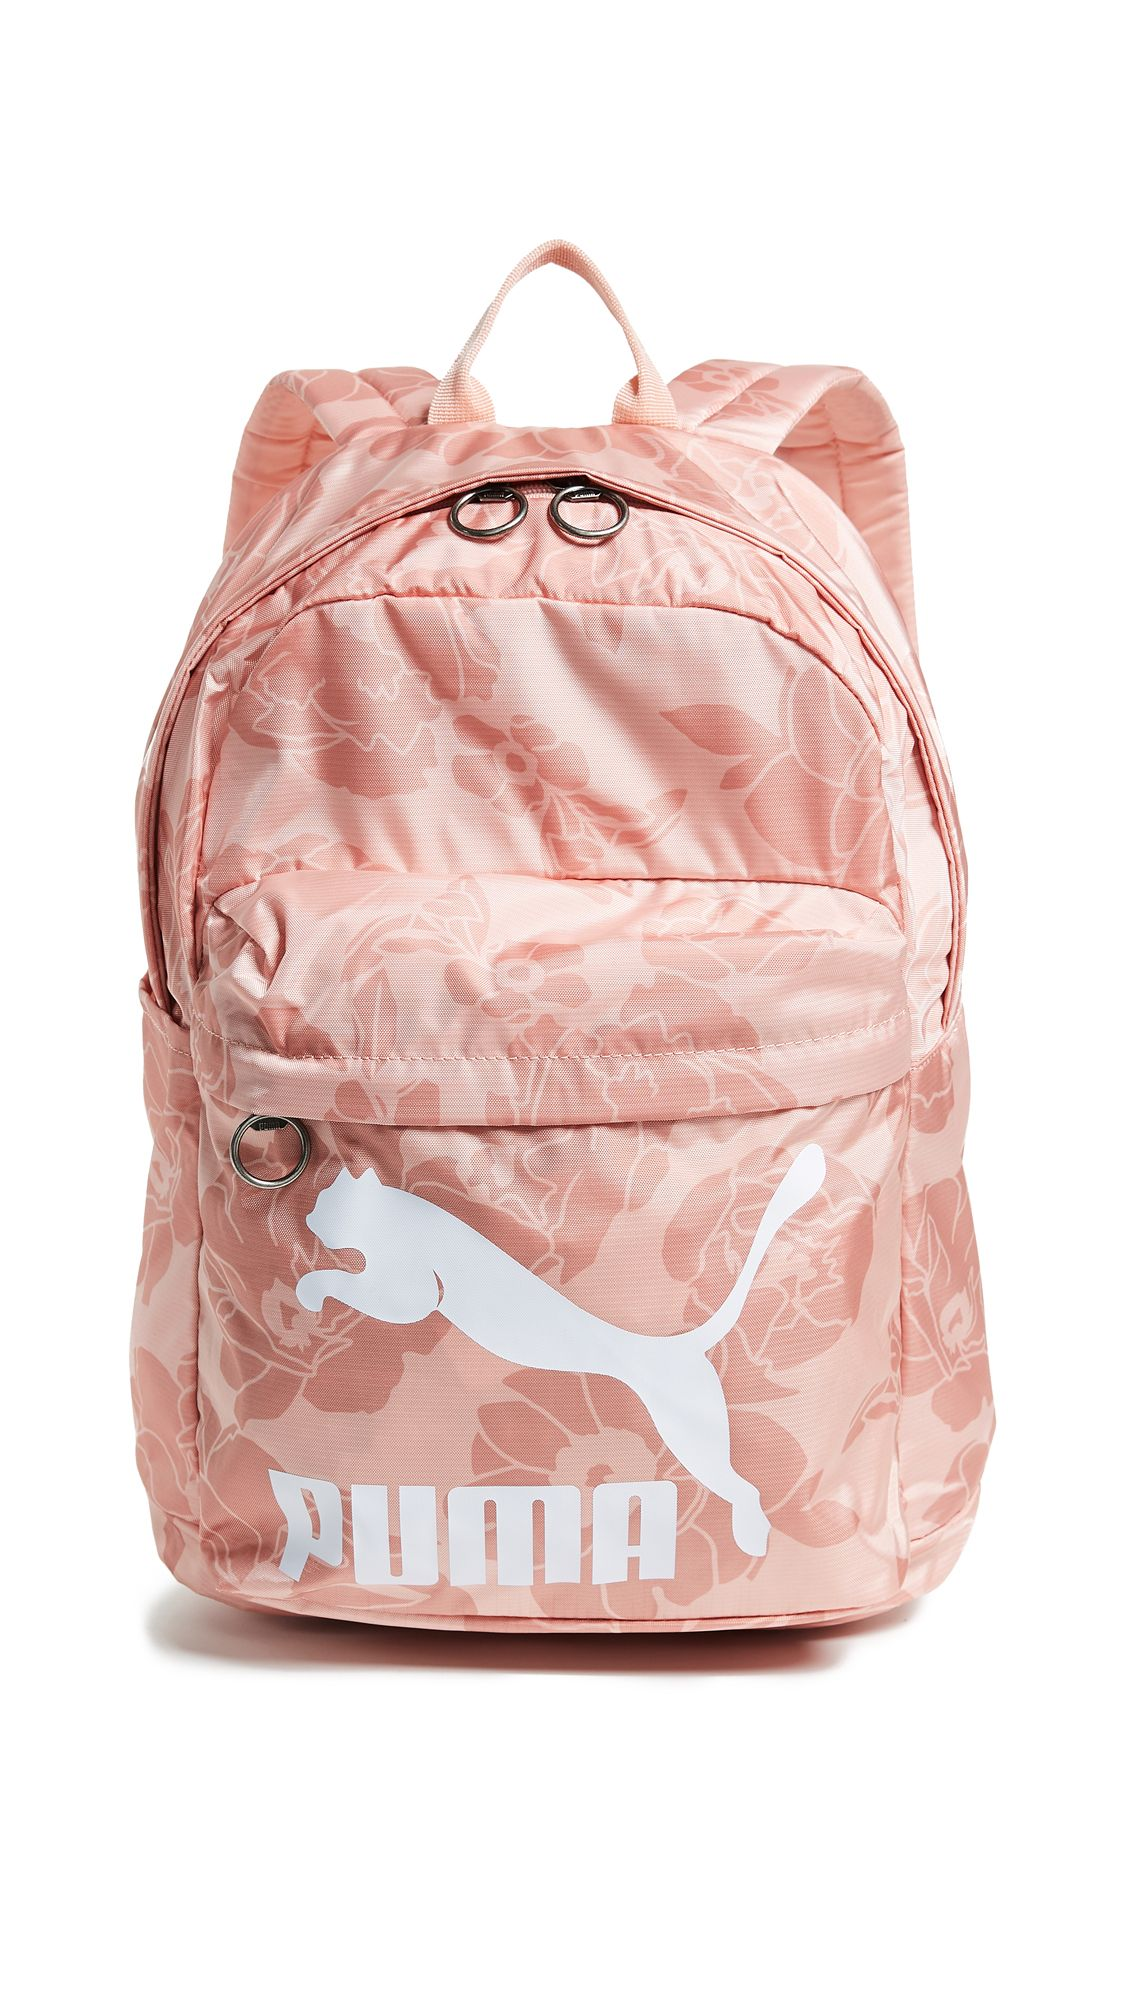 6aa9bde0fe PUMA ORIGINALS BACKPACK.  puma  bags  nylon  backpacks